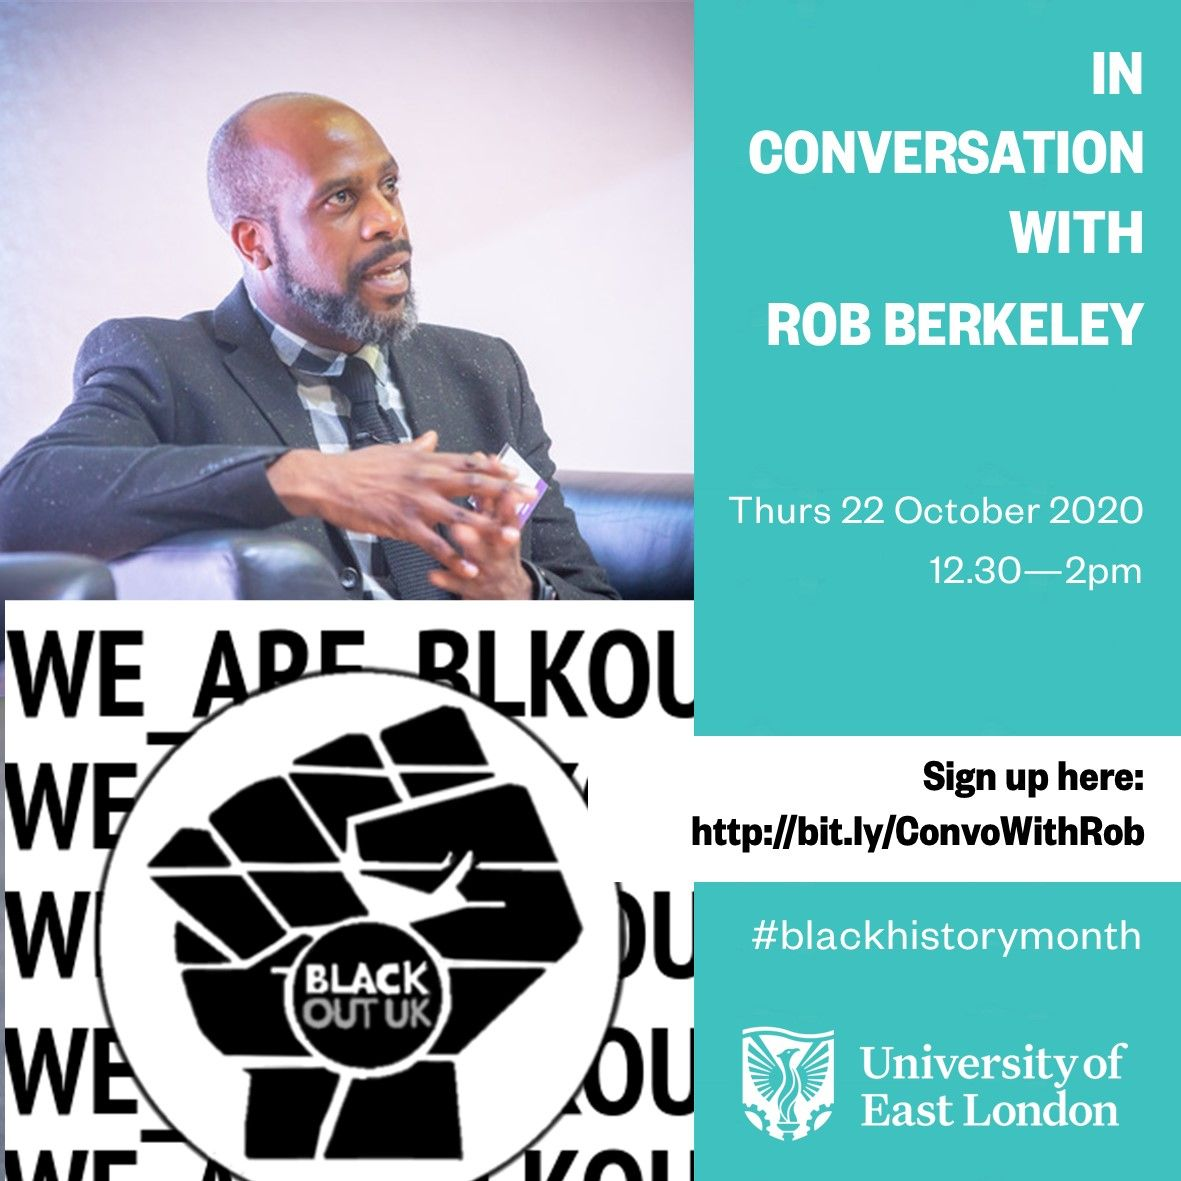 Join us tomorrow to hear from Dr Rob Berkeley, one of Britain's leading social reformers and founder of @BlkOutUK, who has  written for @guardian and @Independent on social justice and movement-building  📅 Thursday, 22 Oct, 12:30-14:00  Book now: https://t.co/fkVzKVqouD https://t.co/ac4WFoFMsf